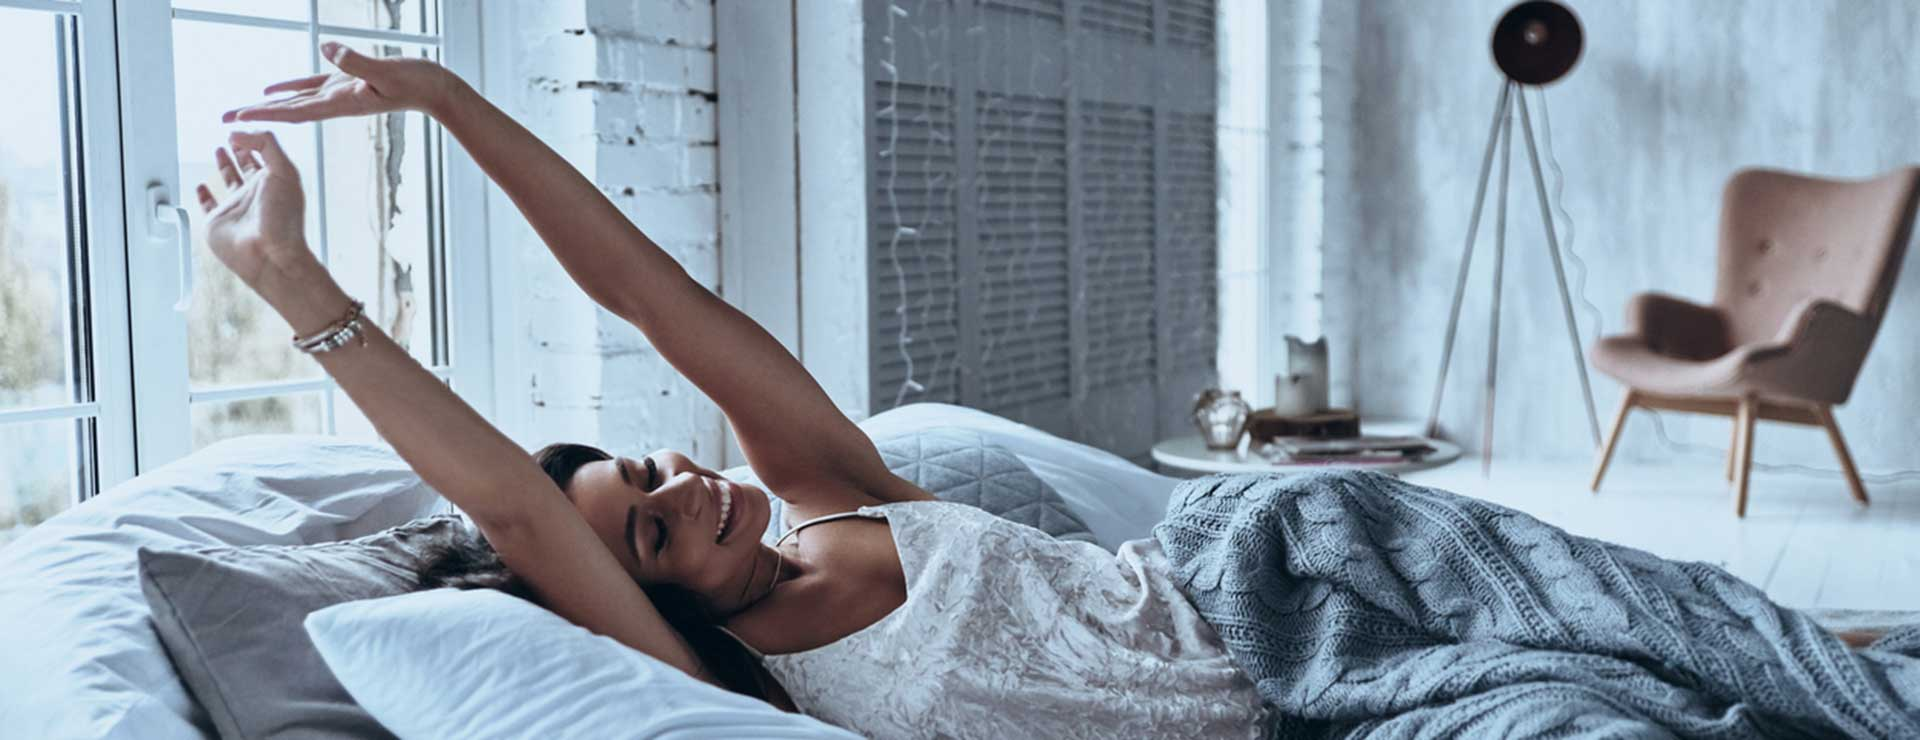 A woman stretching in bed in the morning